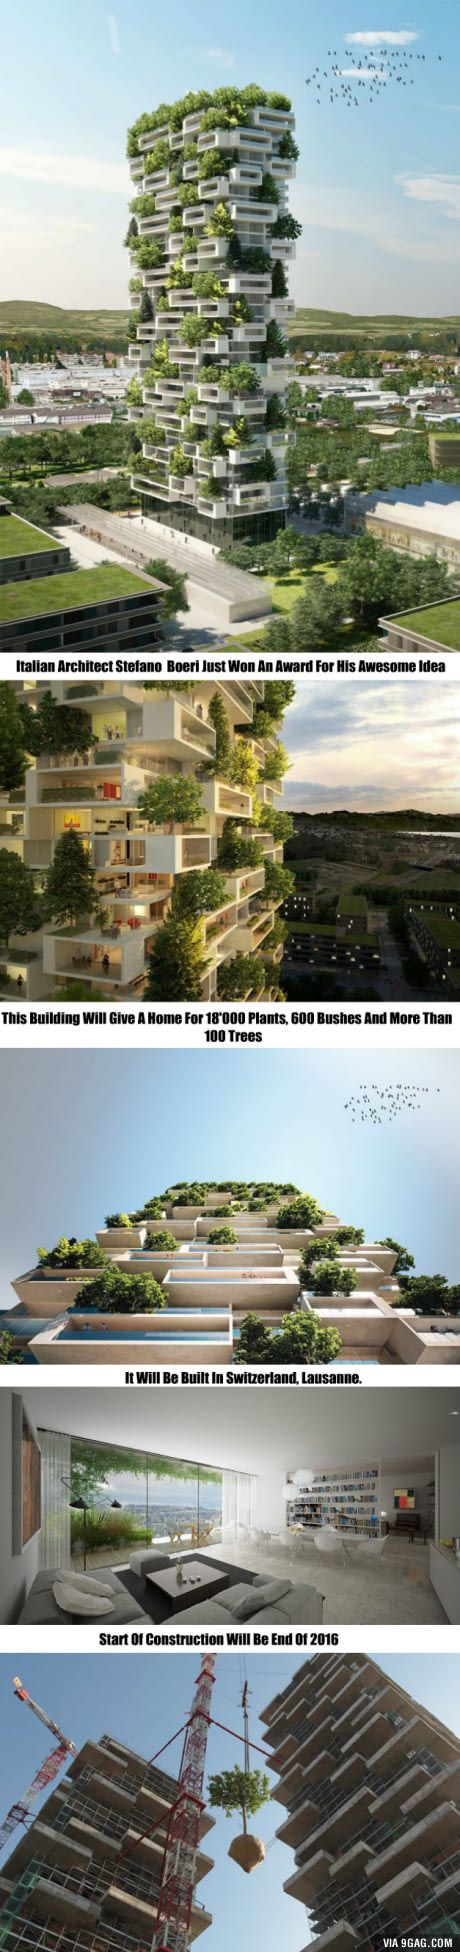 Italian Architect Created The Idea. Building Process Starts Next Year. Would You Live There?